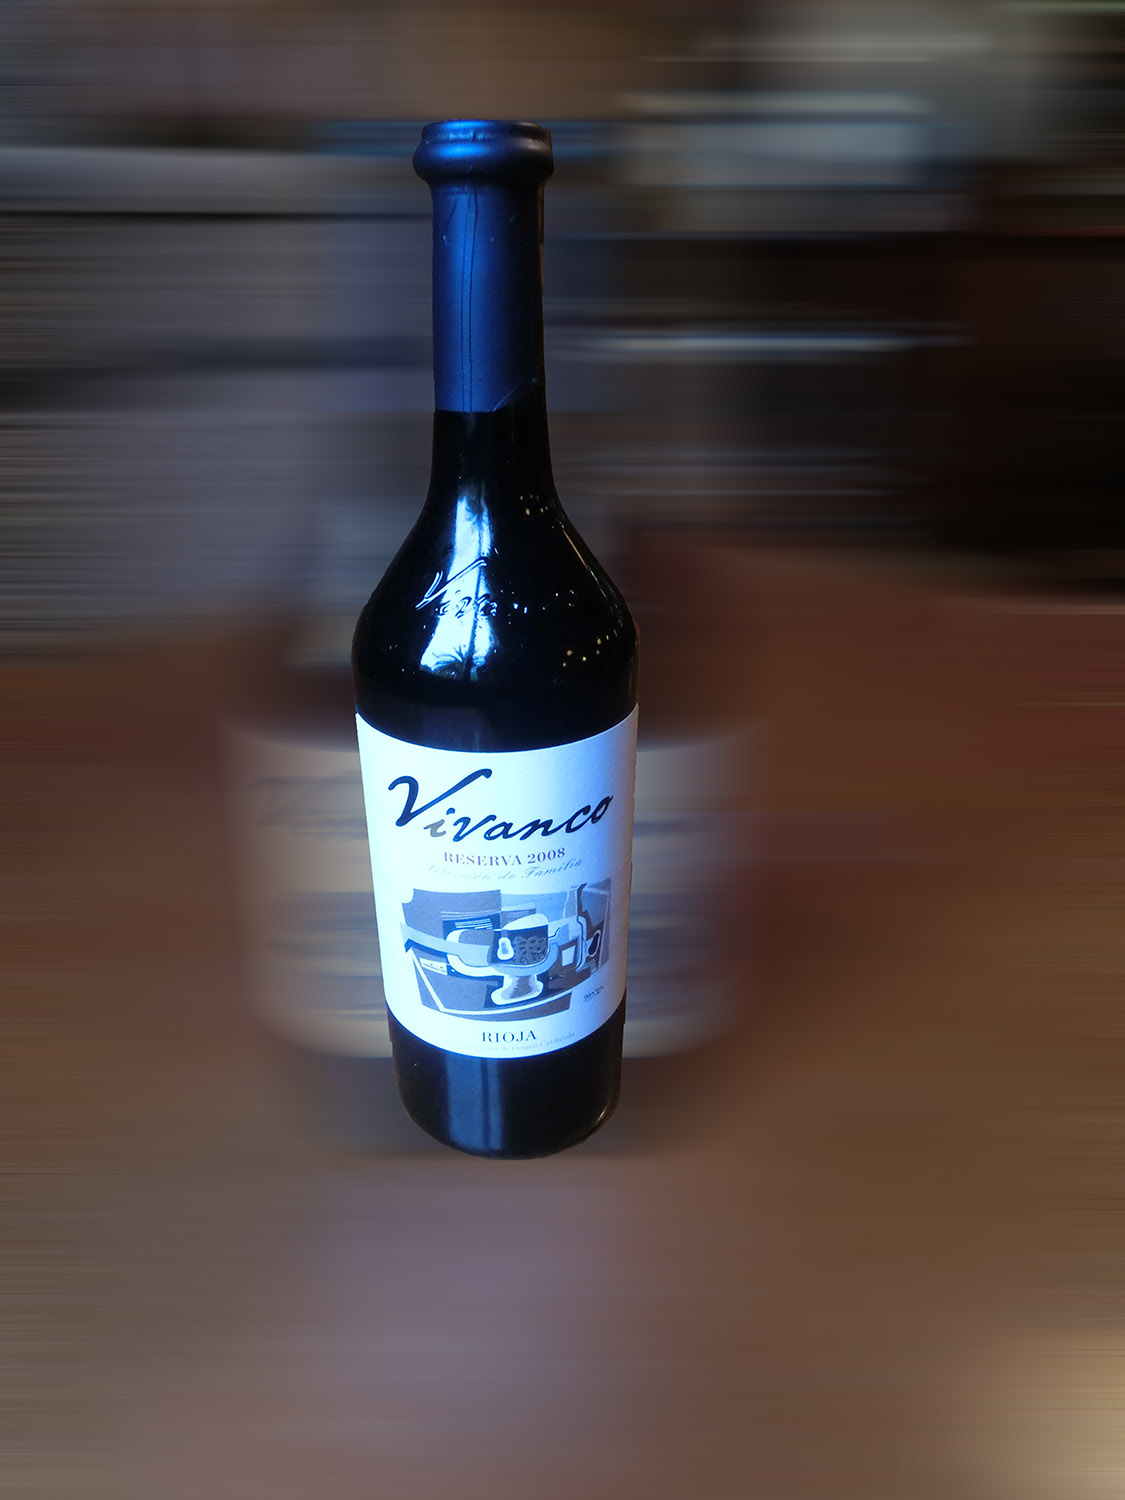 Vivanco Reserva. Rioja